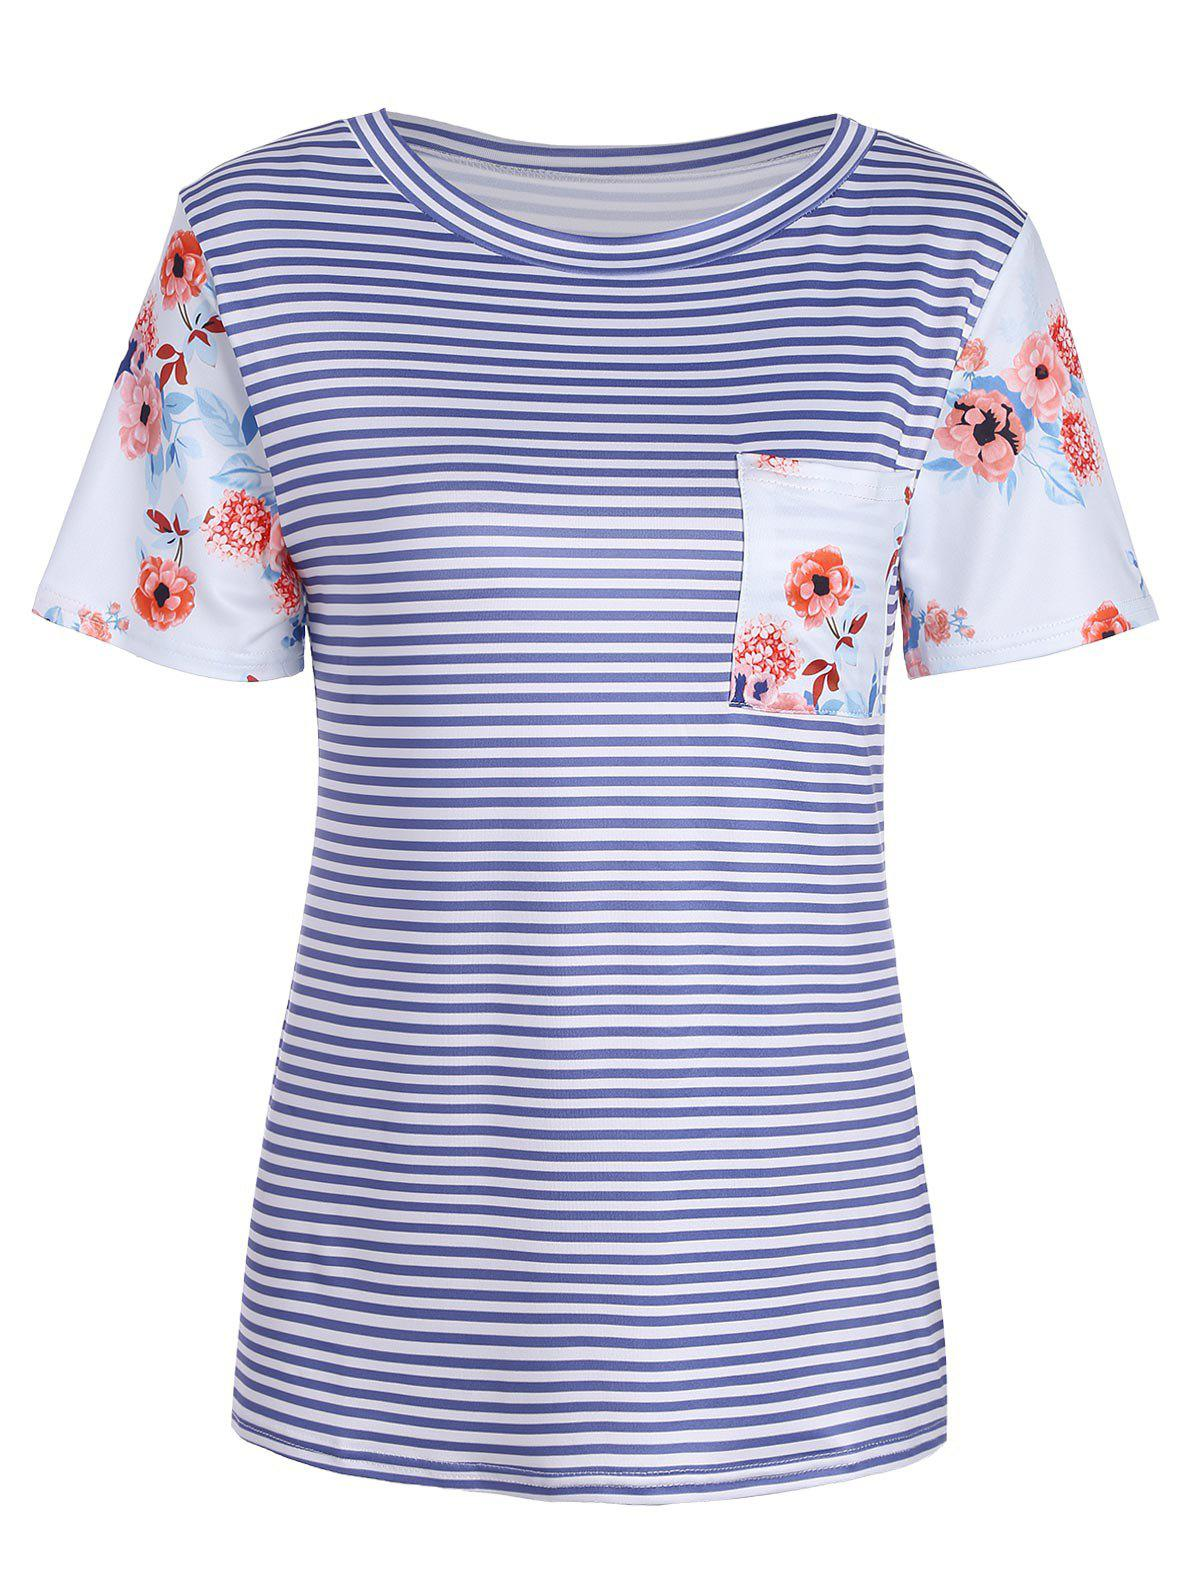 Short Sleeve Rose And Stripe Print T Shirt Blue S In